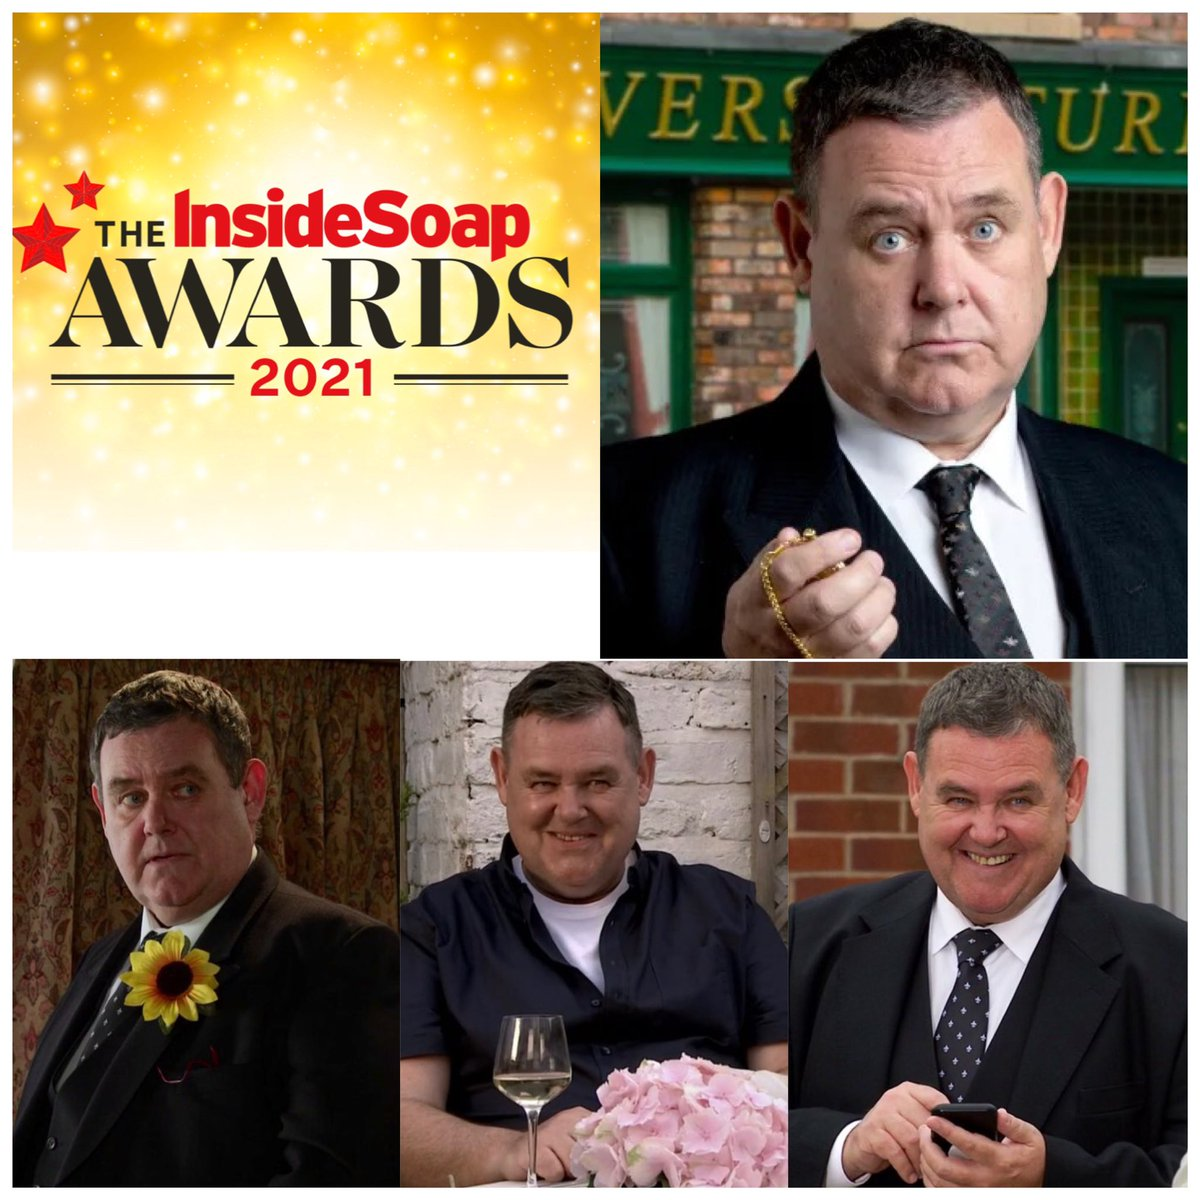 A little reminder folks that voting closes for the @InsideSoapMag Awards at noon on Friday 29th Oct!! PLEASE pop over to give the FABULOUS Mr @TonyMaudsley1 your votes in the BEST NEWCOMER category for @itvcorrie!! Thank you!! ❤️🙏🏼 ➡️ hearstdigital.wufoo.com/forms/z805lj11… #George #Corrie